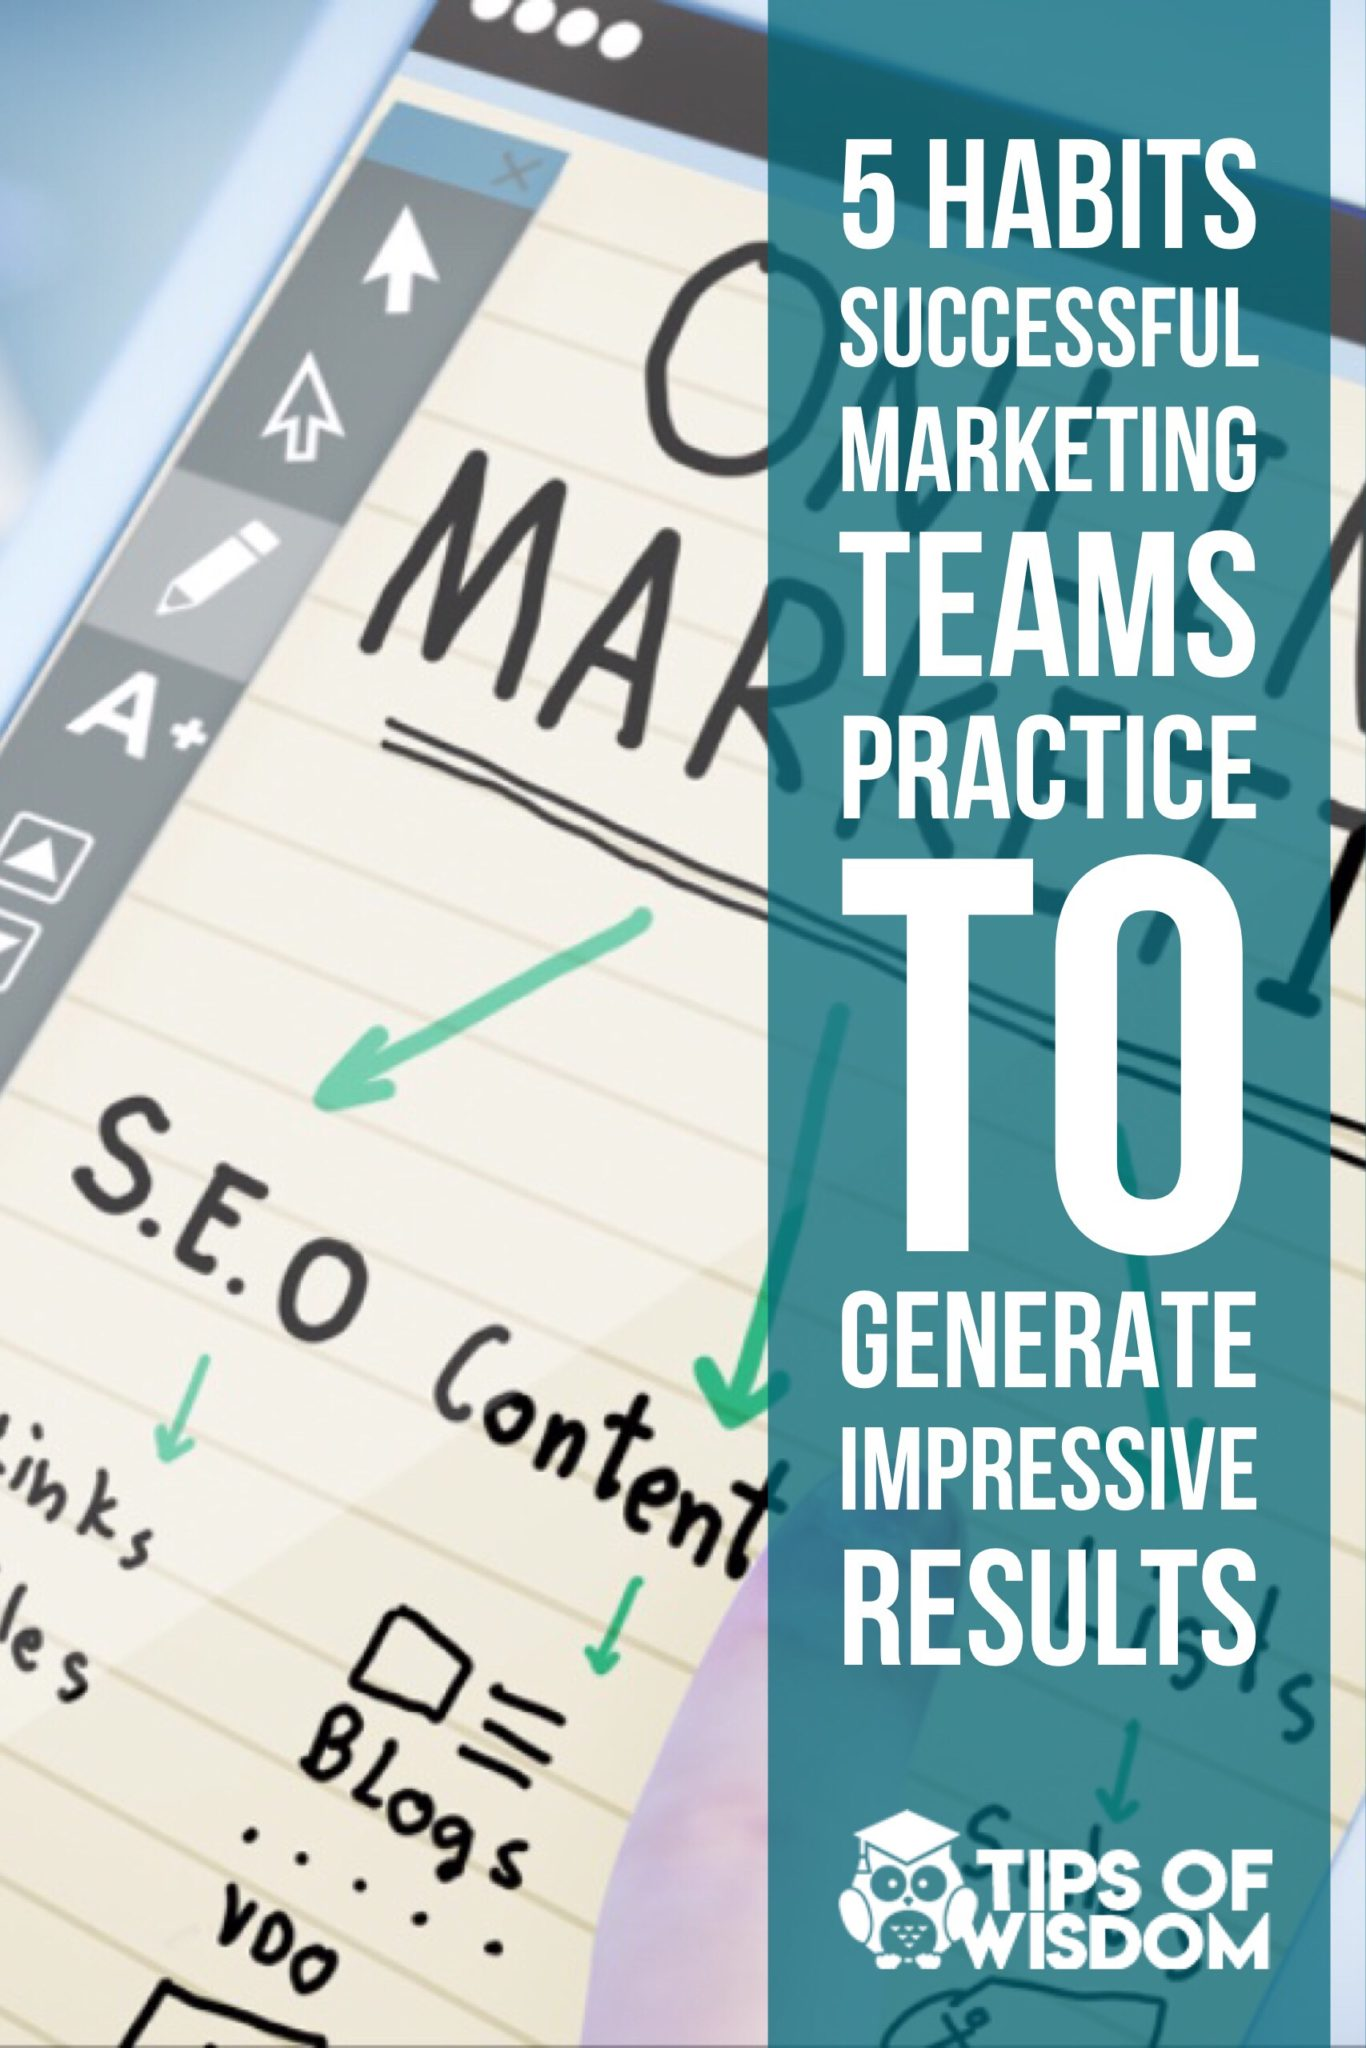 5 Habits Successful Marketing Teams Practice to Generate Impressive Results